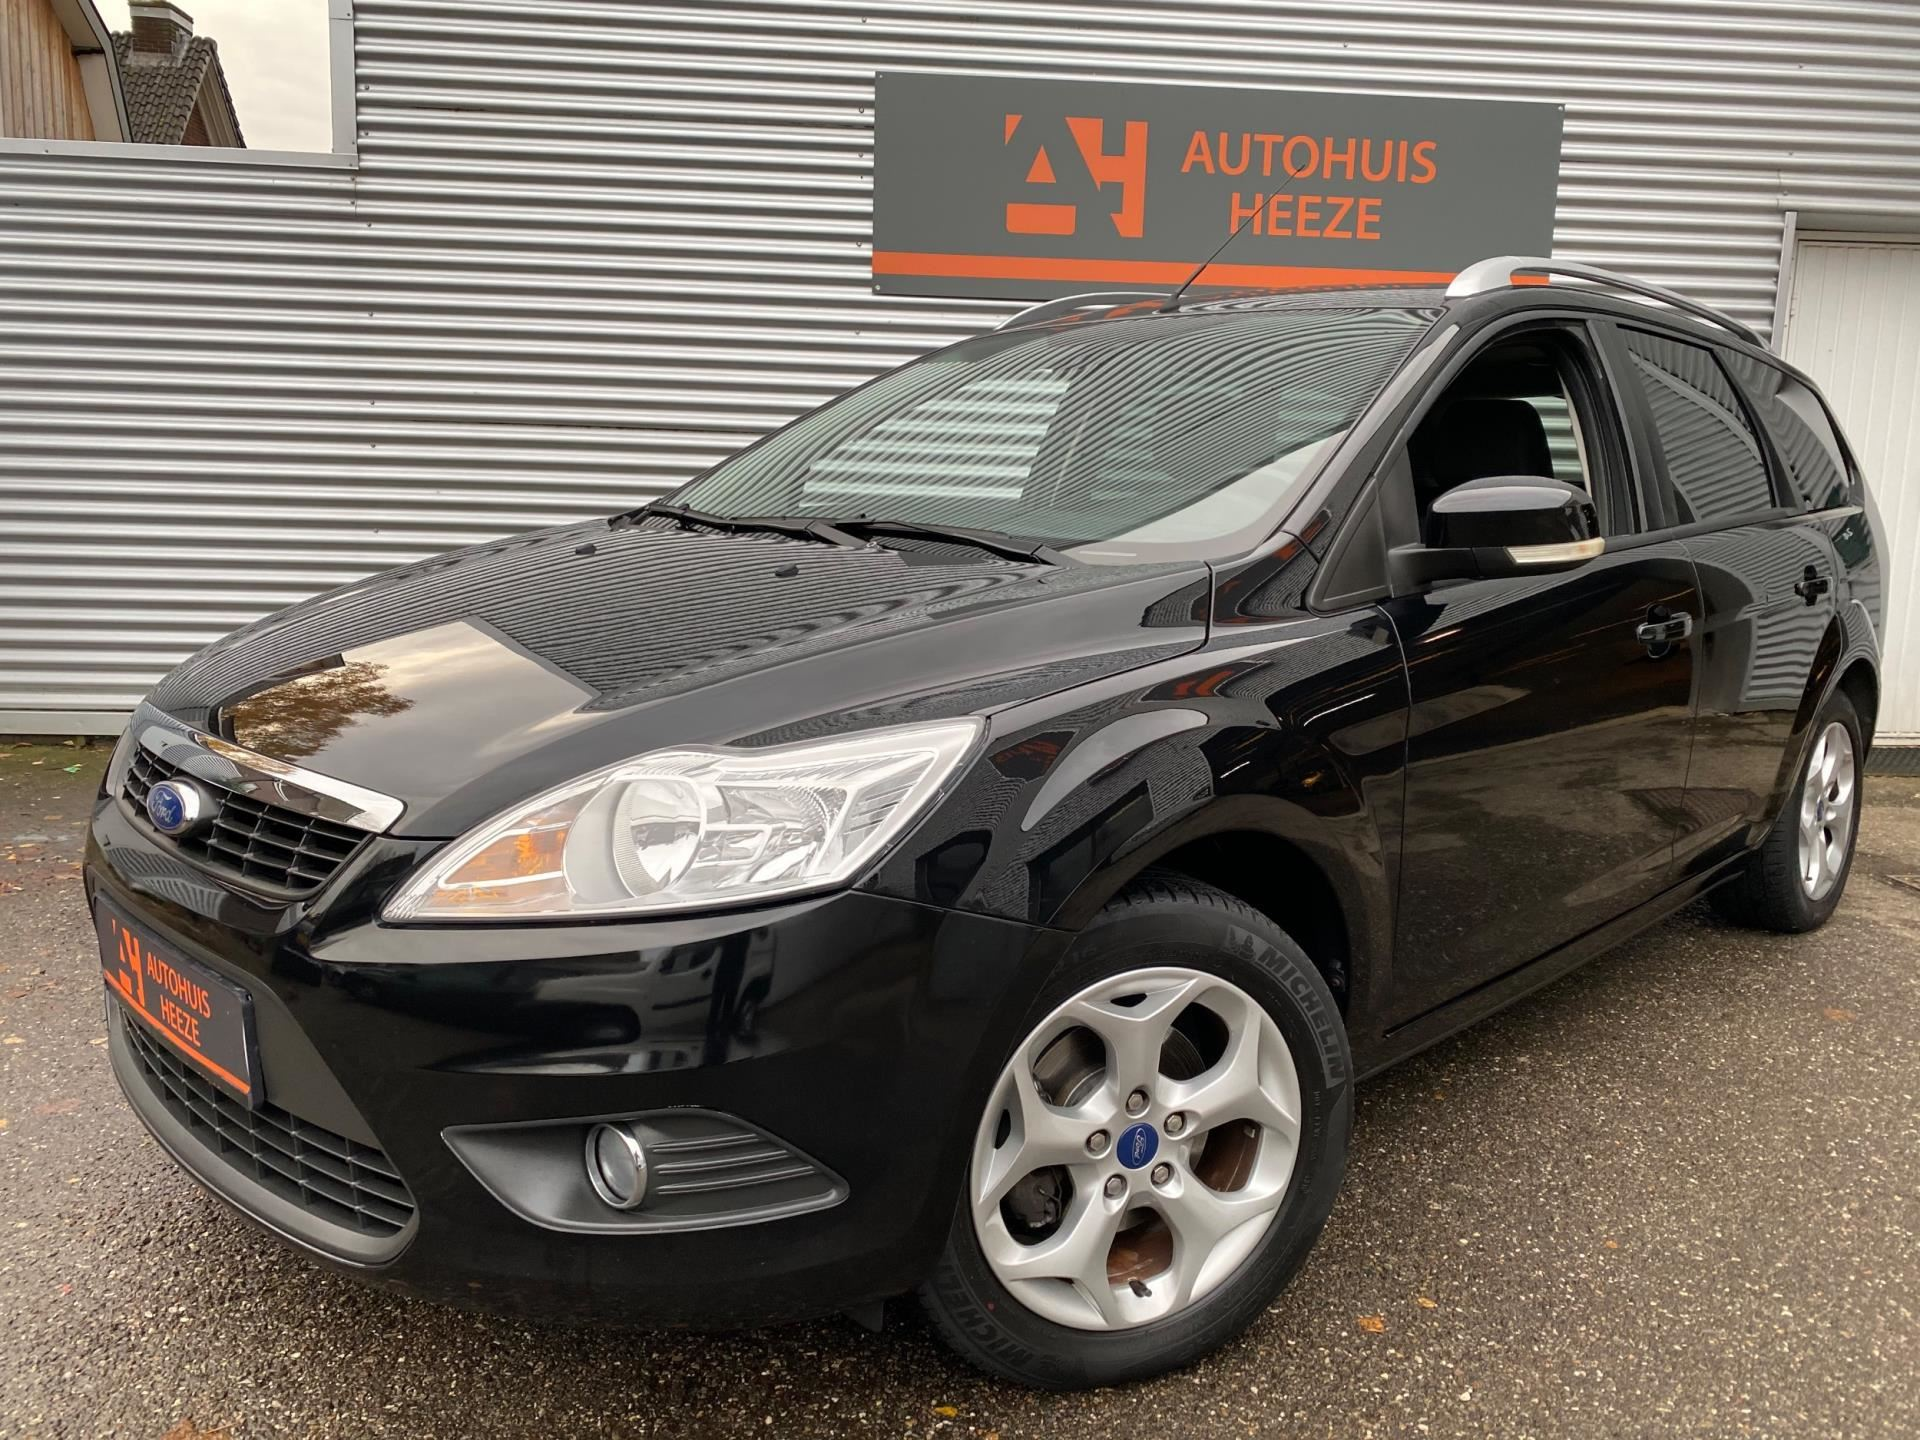 Ford Focus Wagon occasion - Autohuis Heeze